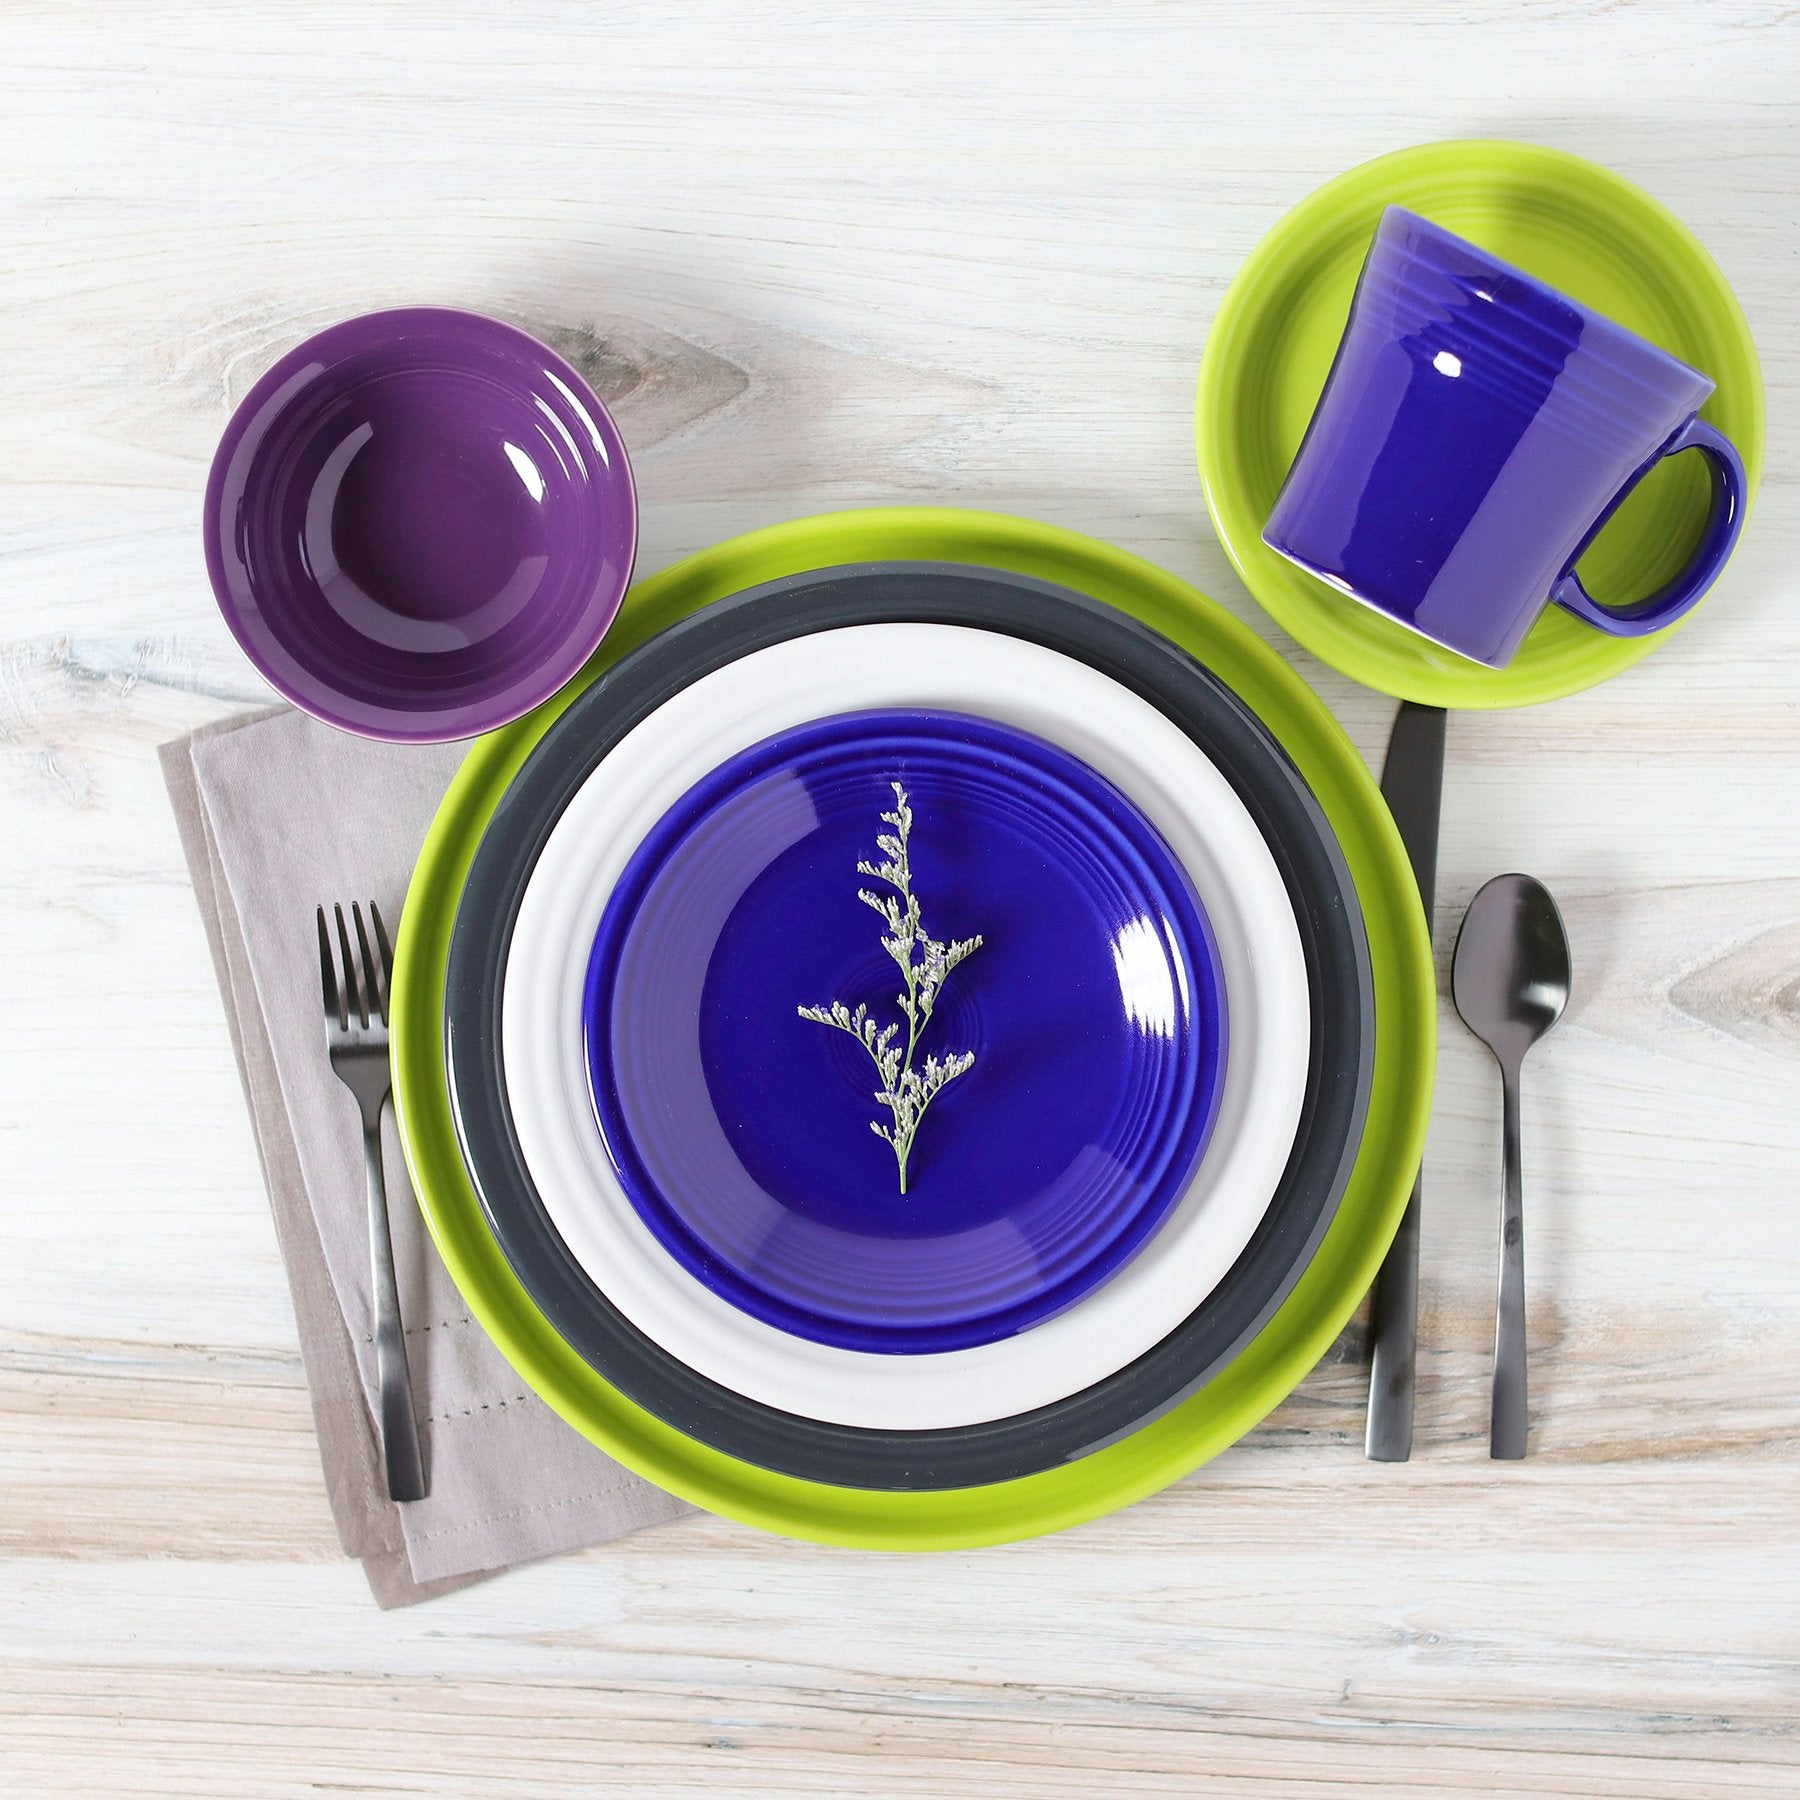 The newest color of dinnerware proudly made in the USA - meet Twilight by The Fiesta Tableware Company.